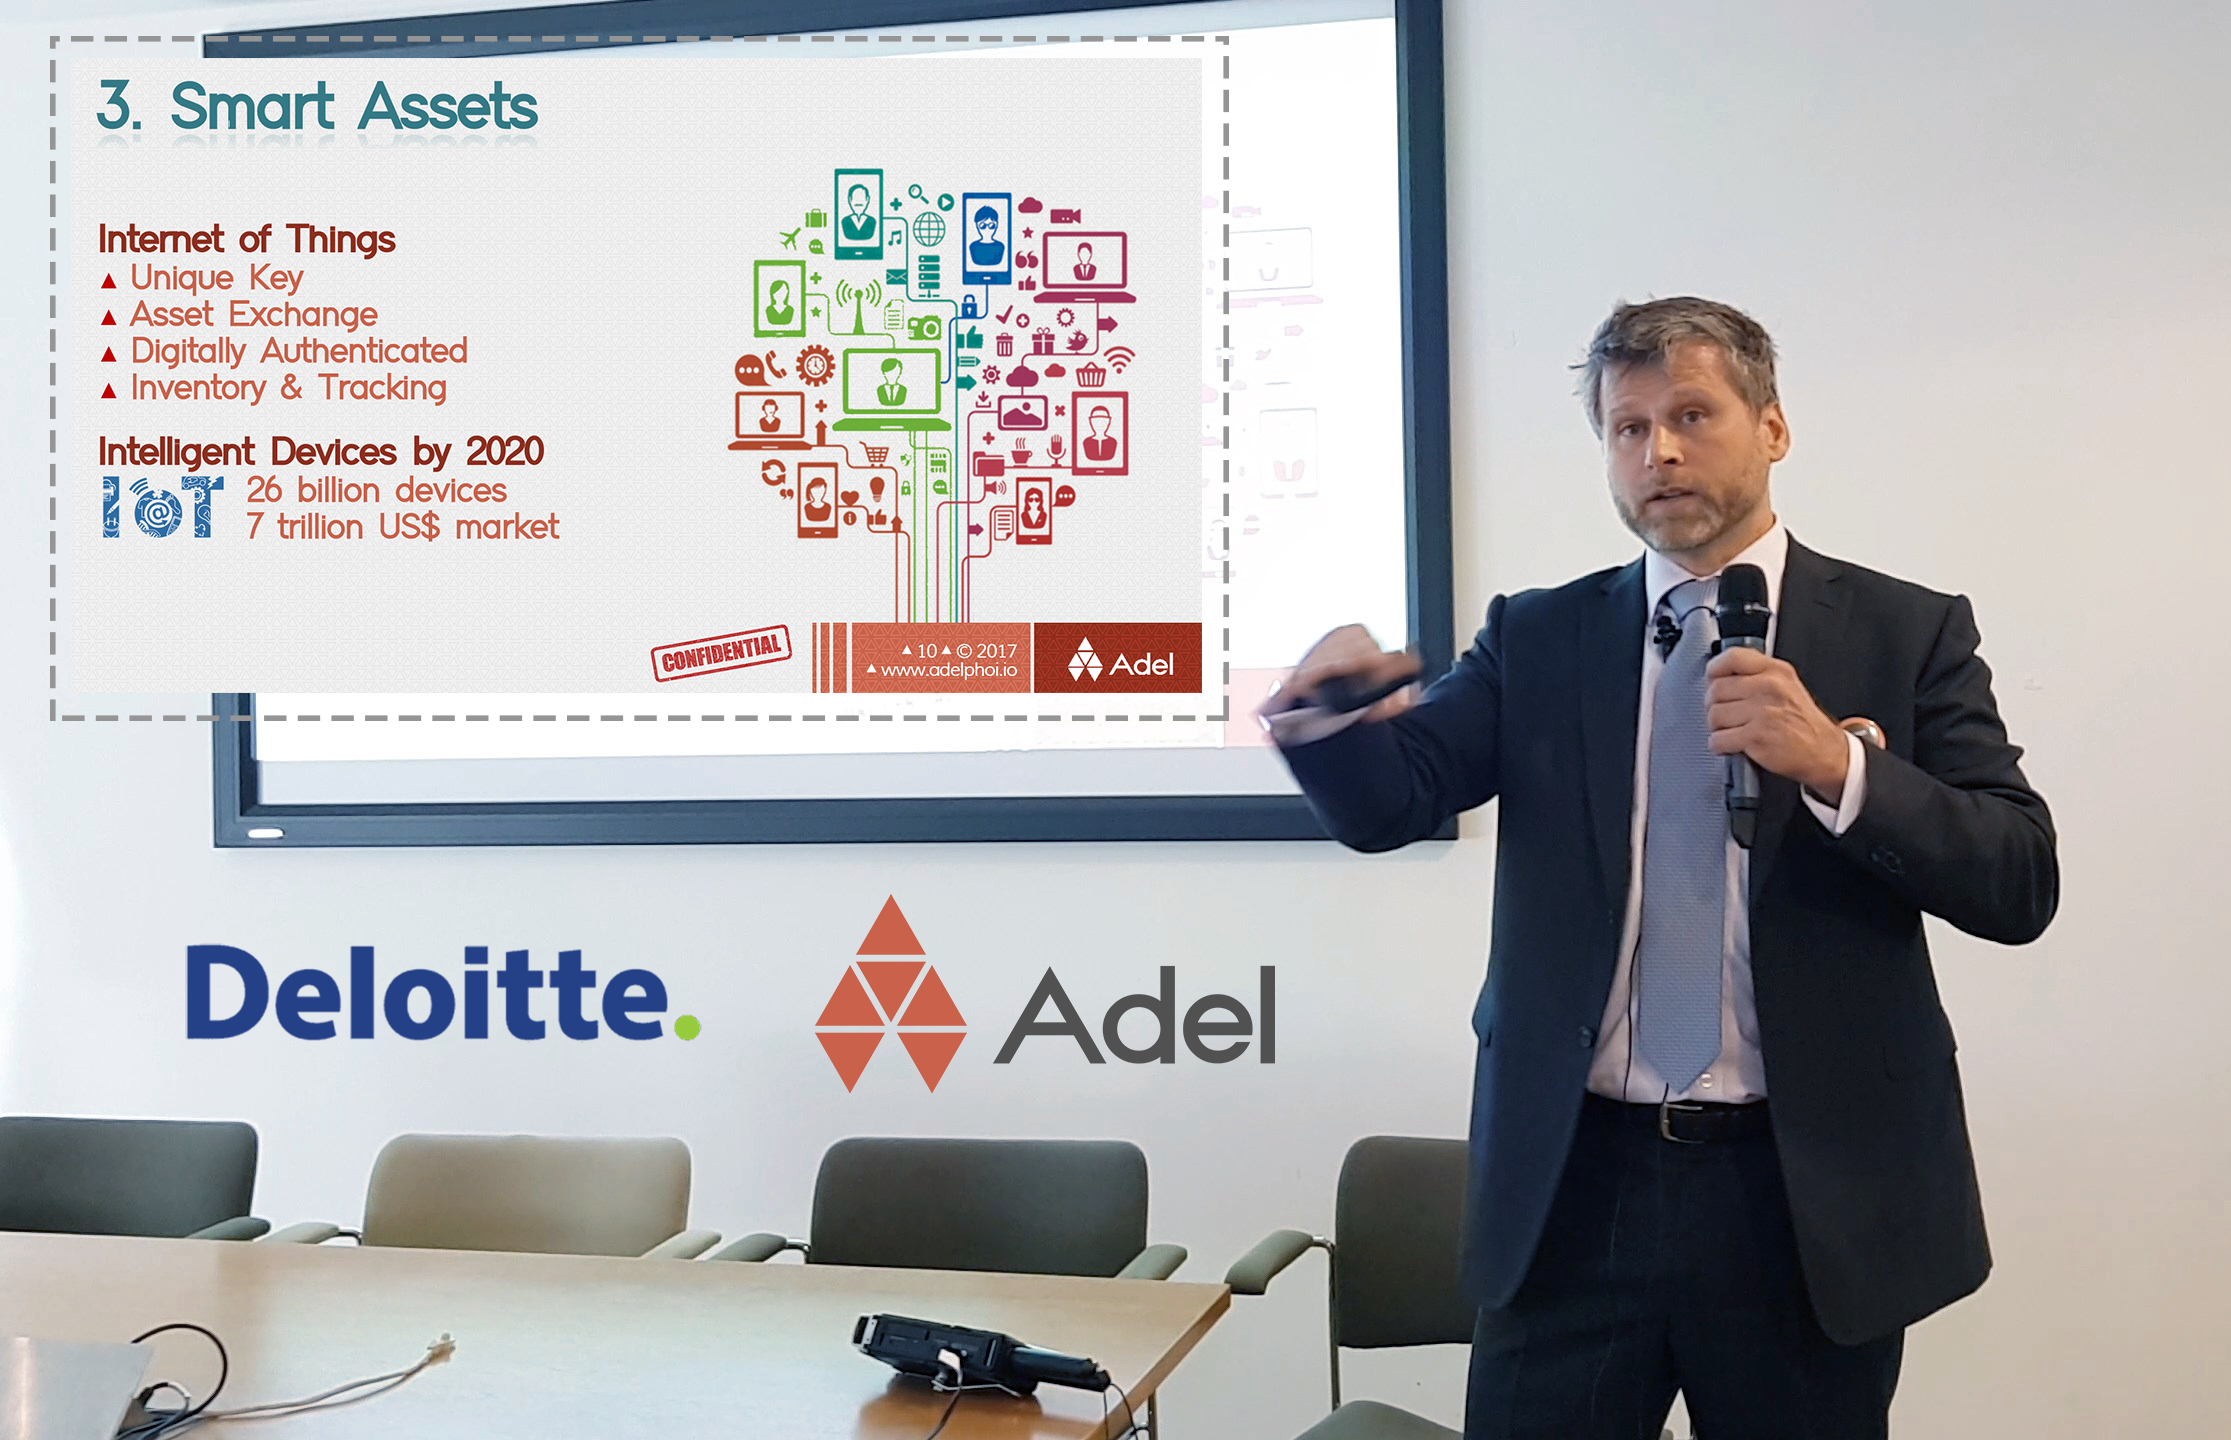 Adel ▲ Seminar ▲ Anatomy of the Blockchain Evolution ▲ Deloitte